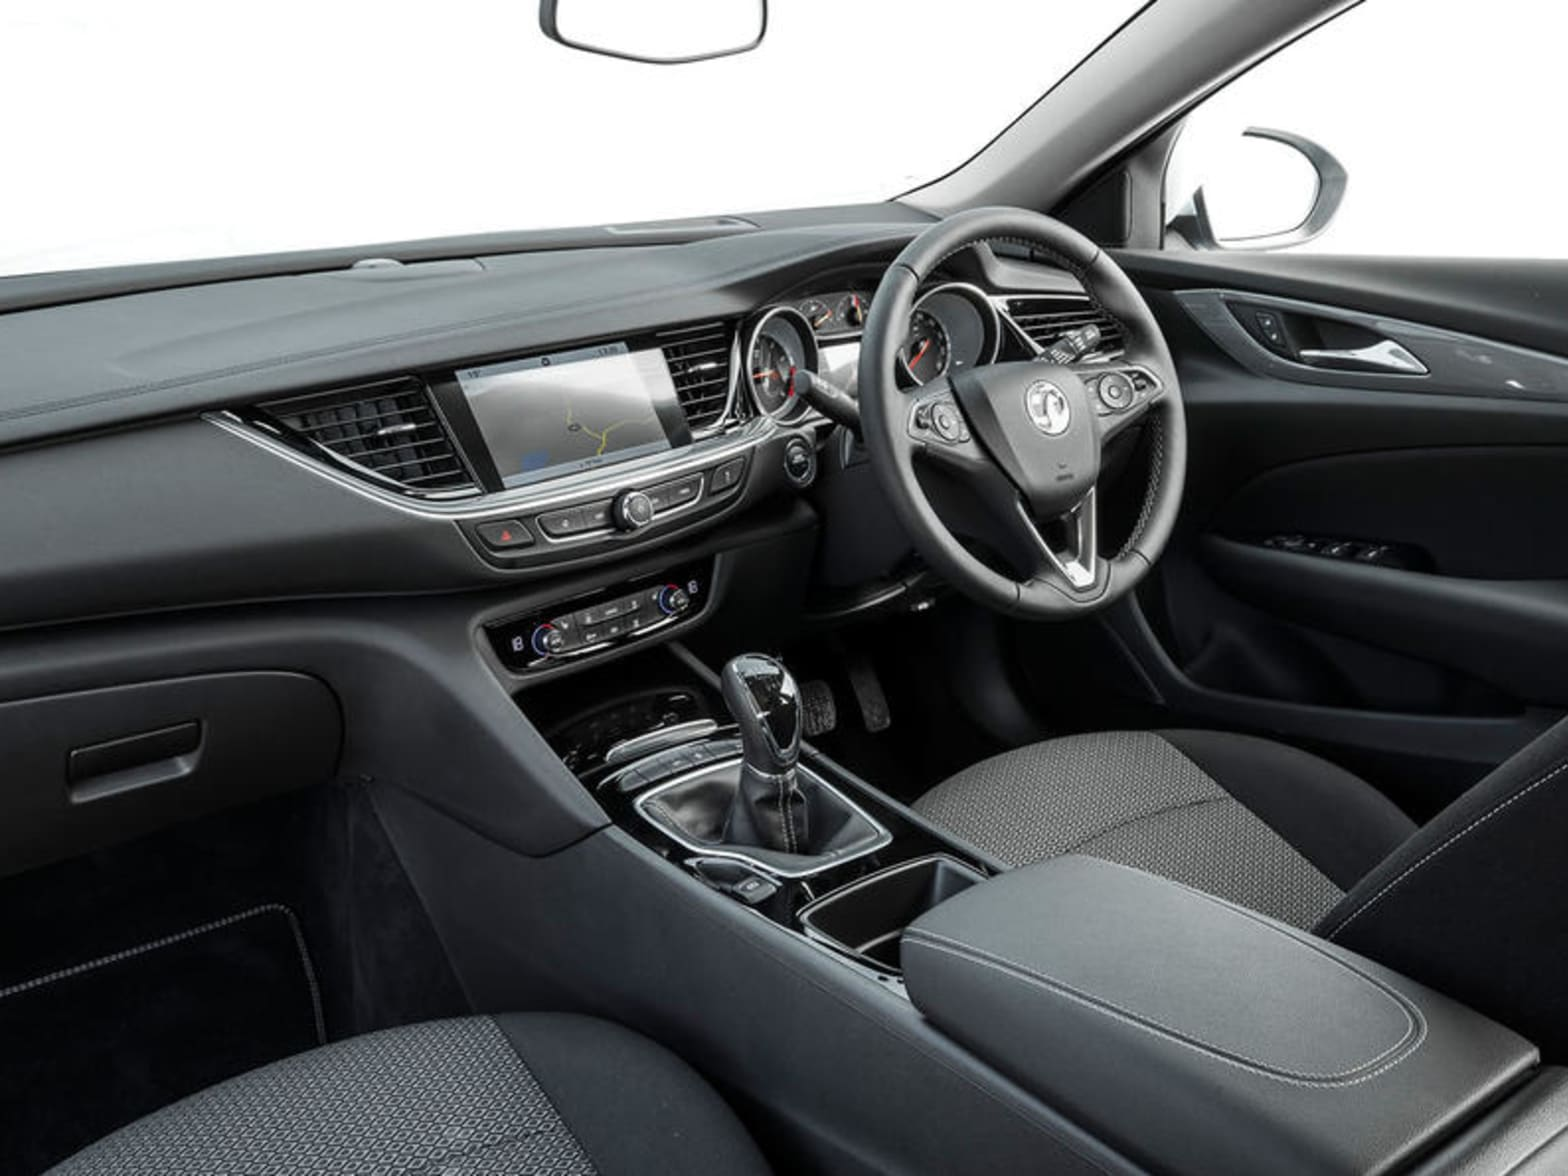 New Vauxhall Insignia Country Tourer | Inverness, Dingwall